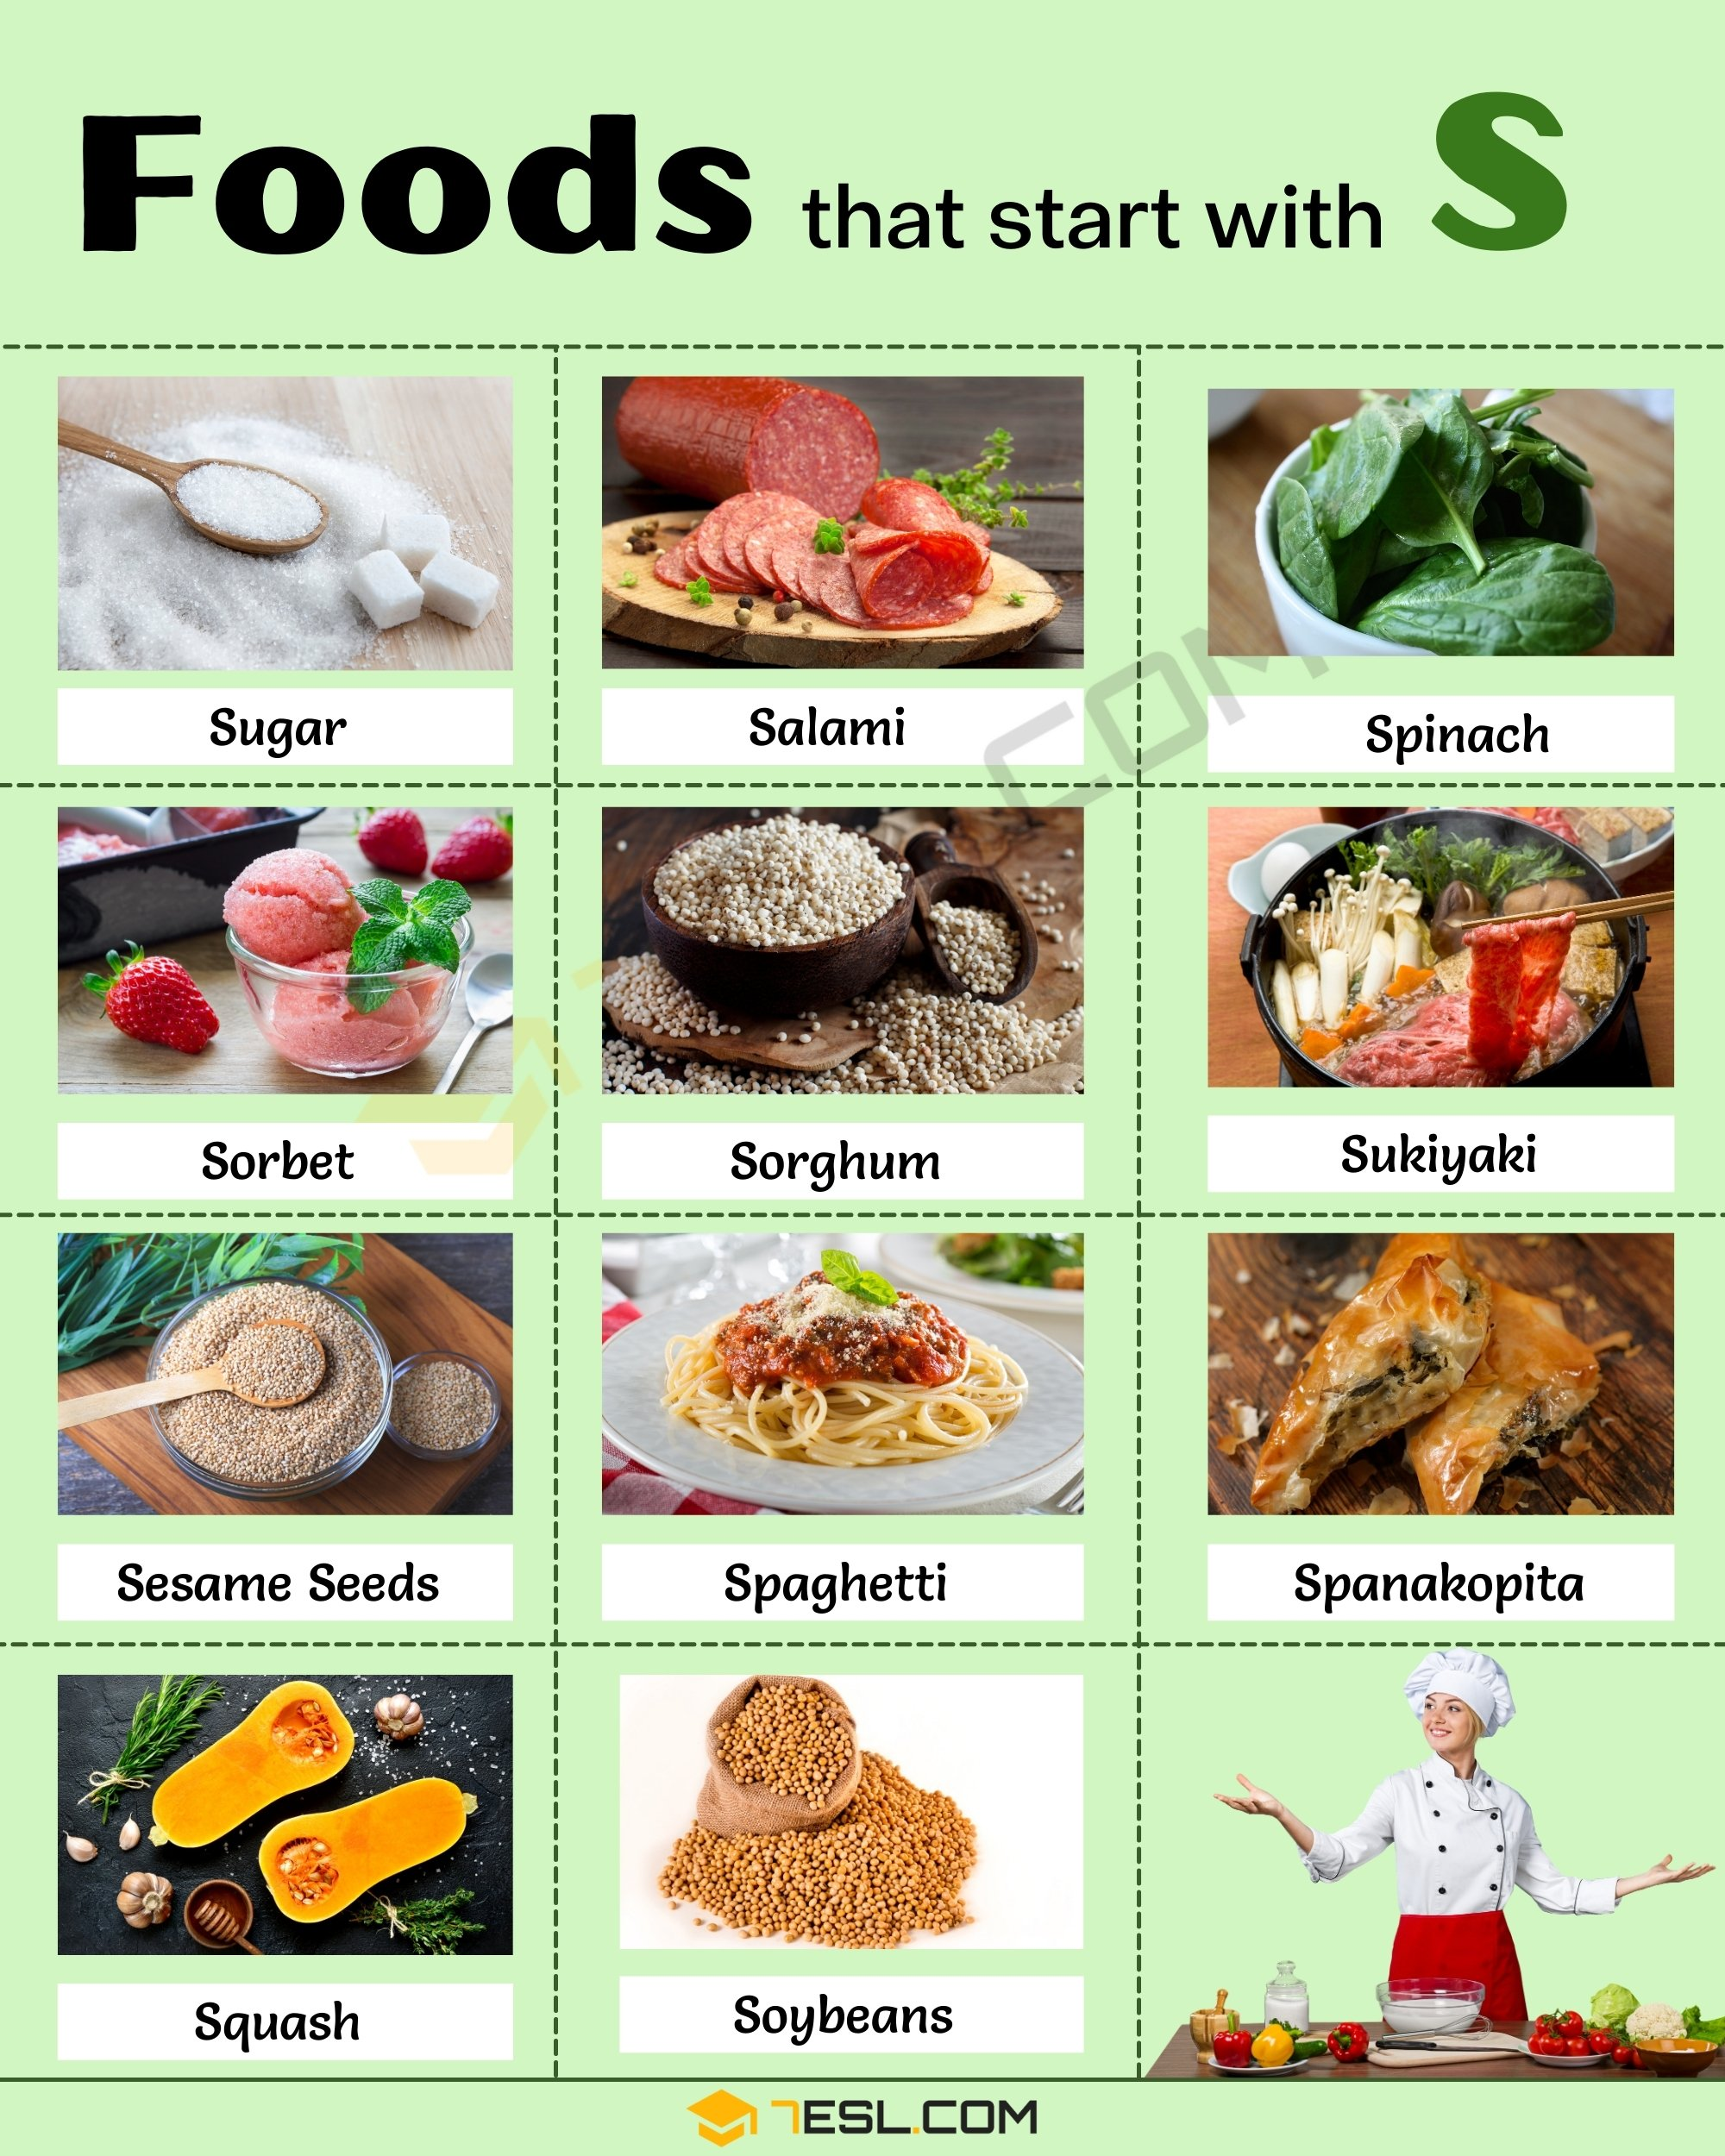 Foods that start with S